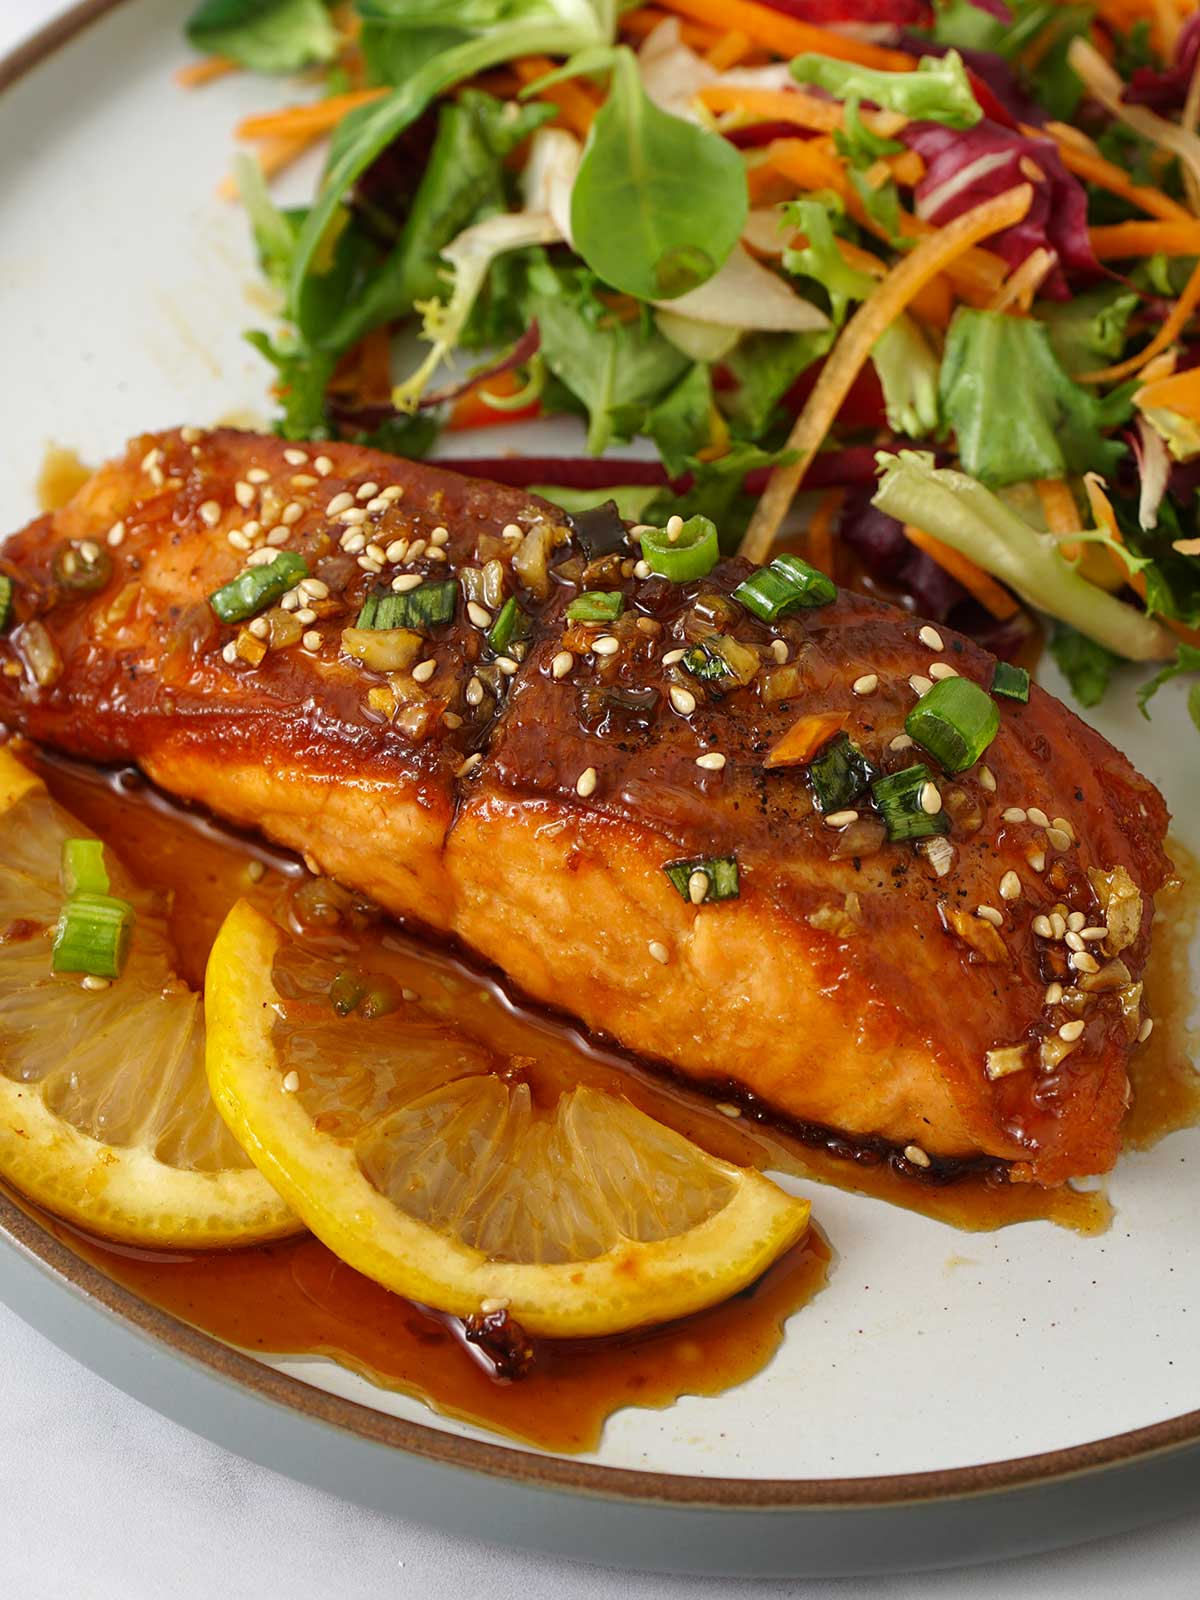 Honey salmon salmon, with two slices of lemon and a side of salad on the white plate.